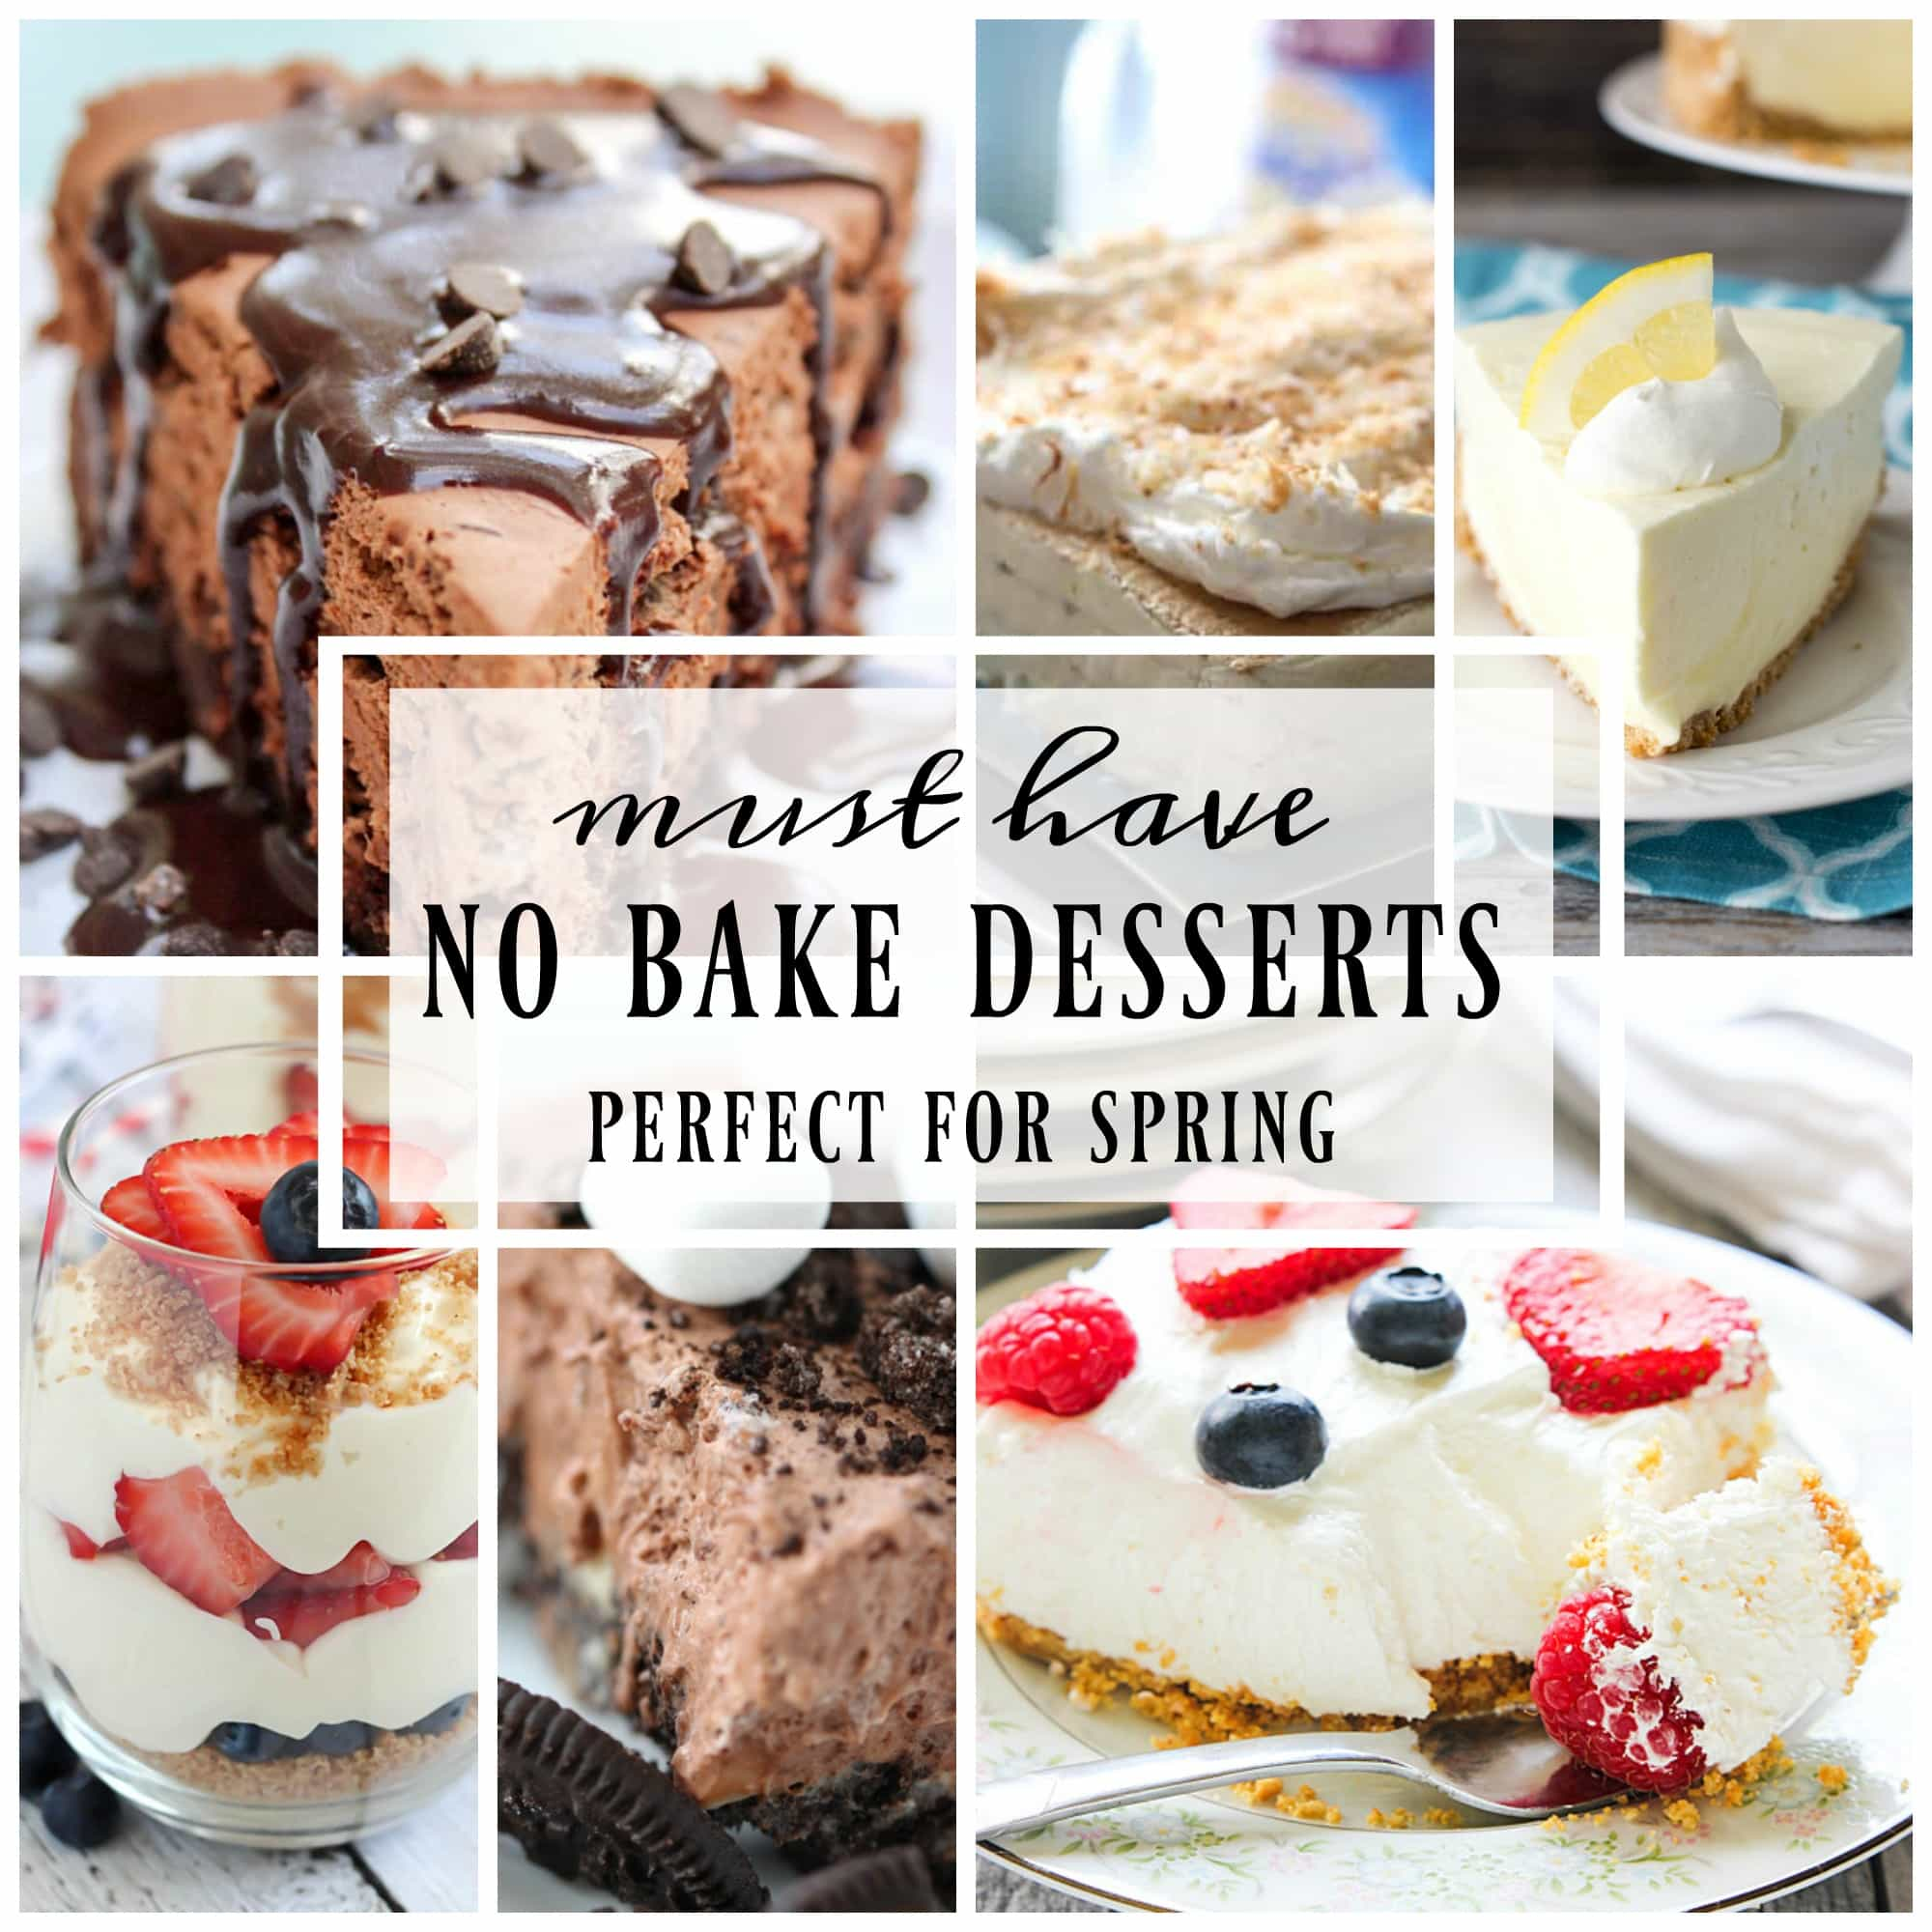 When the weather gets warmer, no bake desserts are a must!